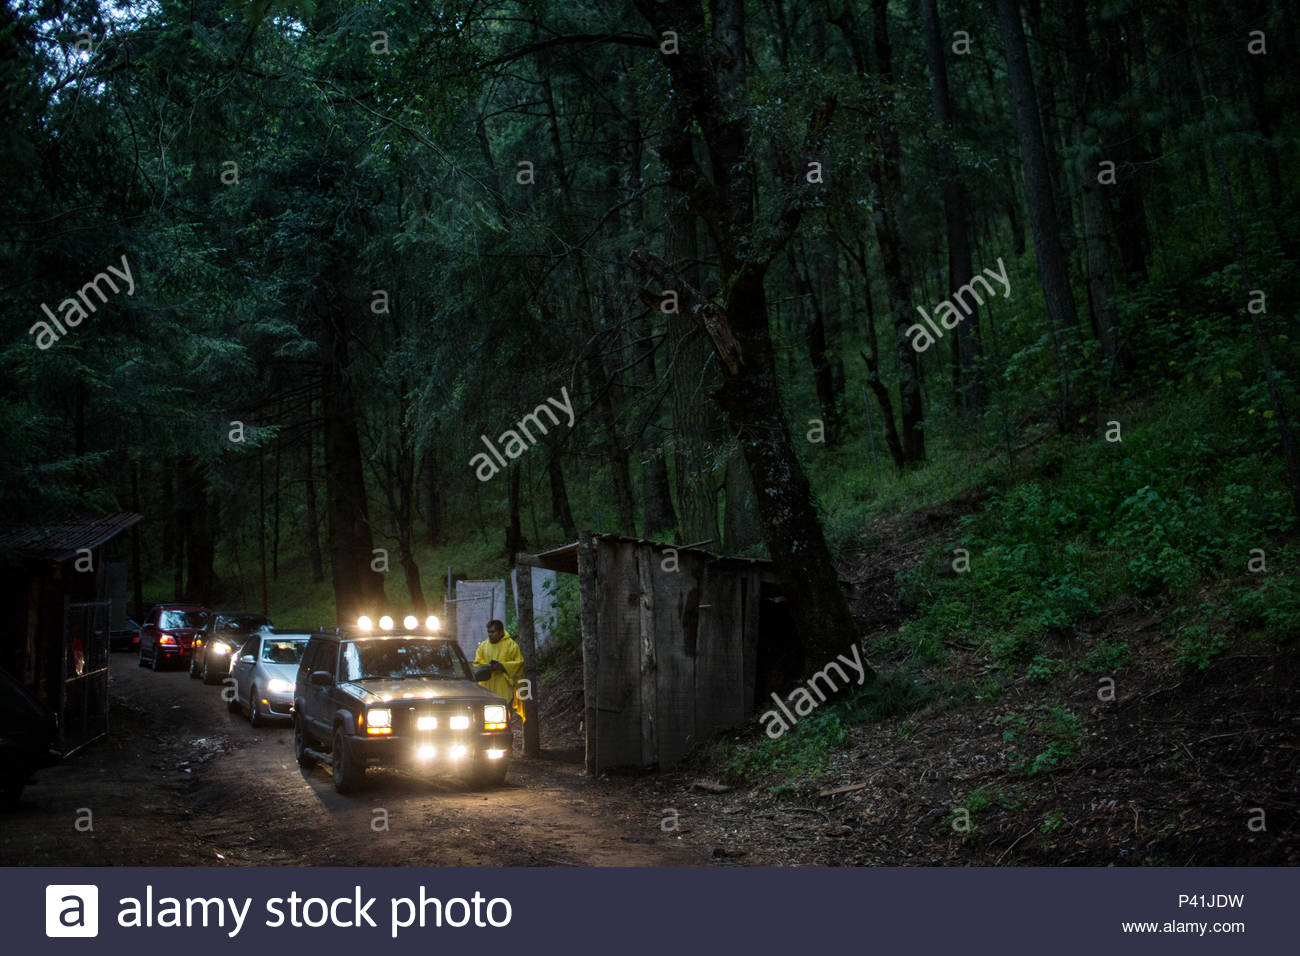 Tourists arrive at the Santa Clara Sanctuary to see fireflies. - Stock Image